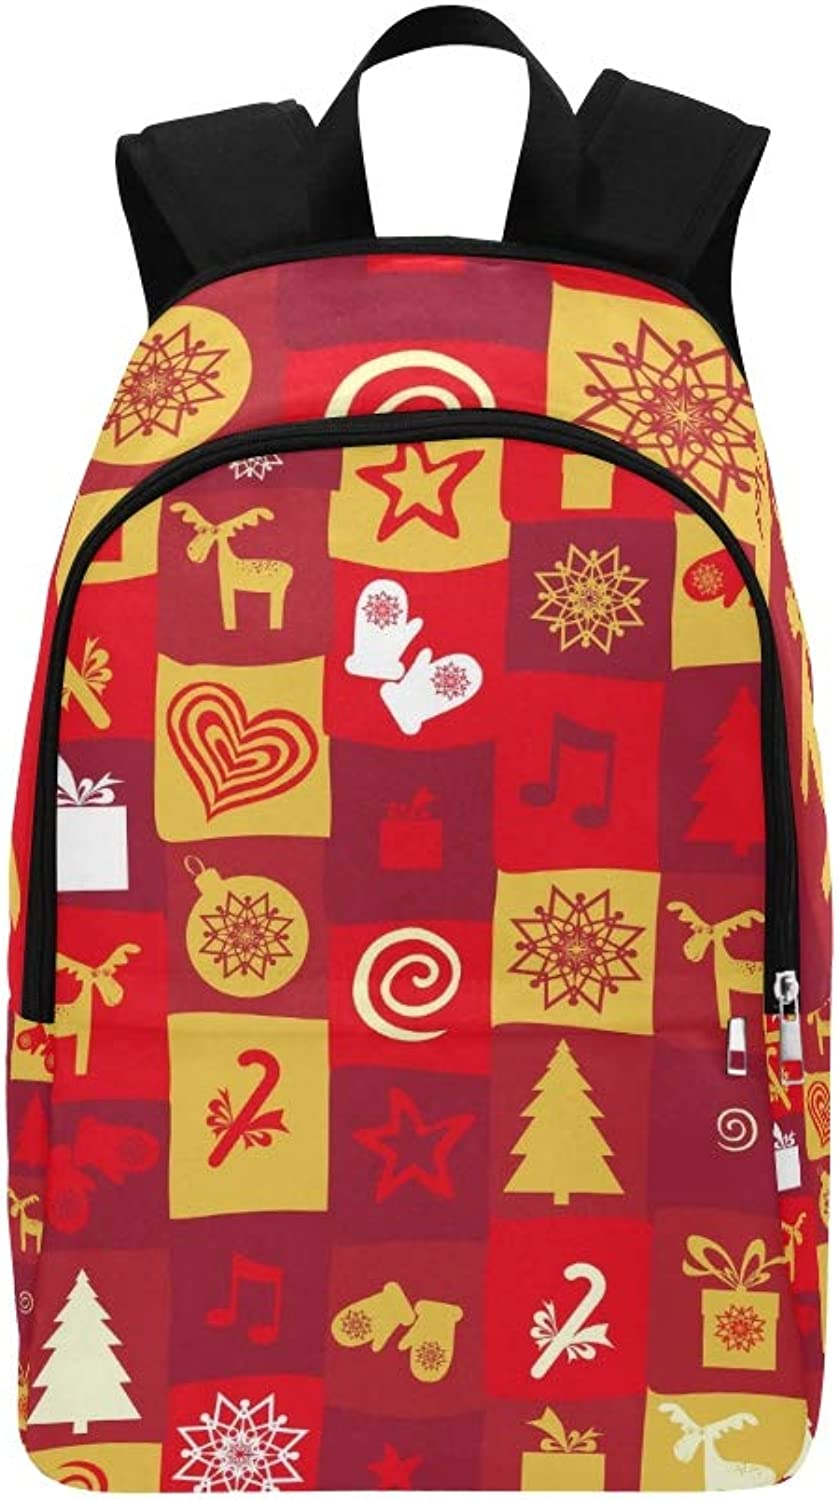 Holiday Christmas New Year Casual Daypack Travel Bag College School Backpack for Mens and Women